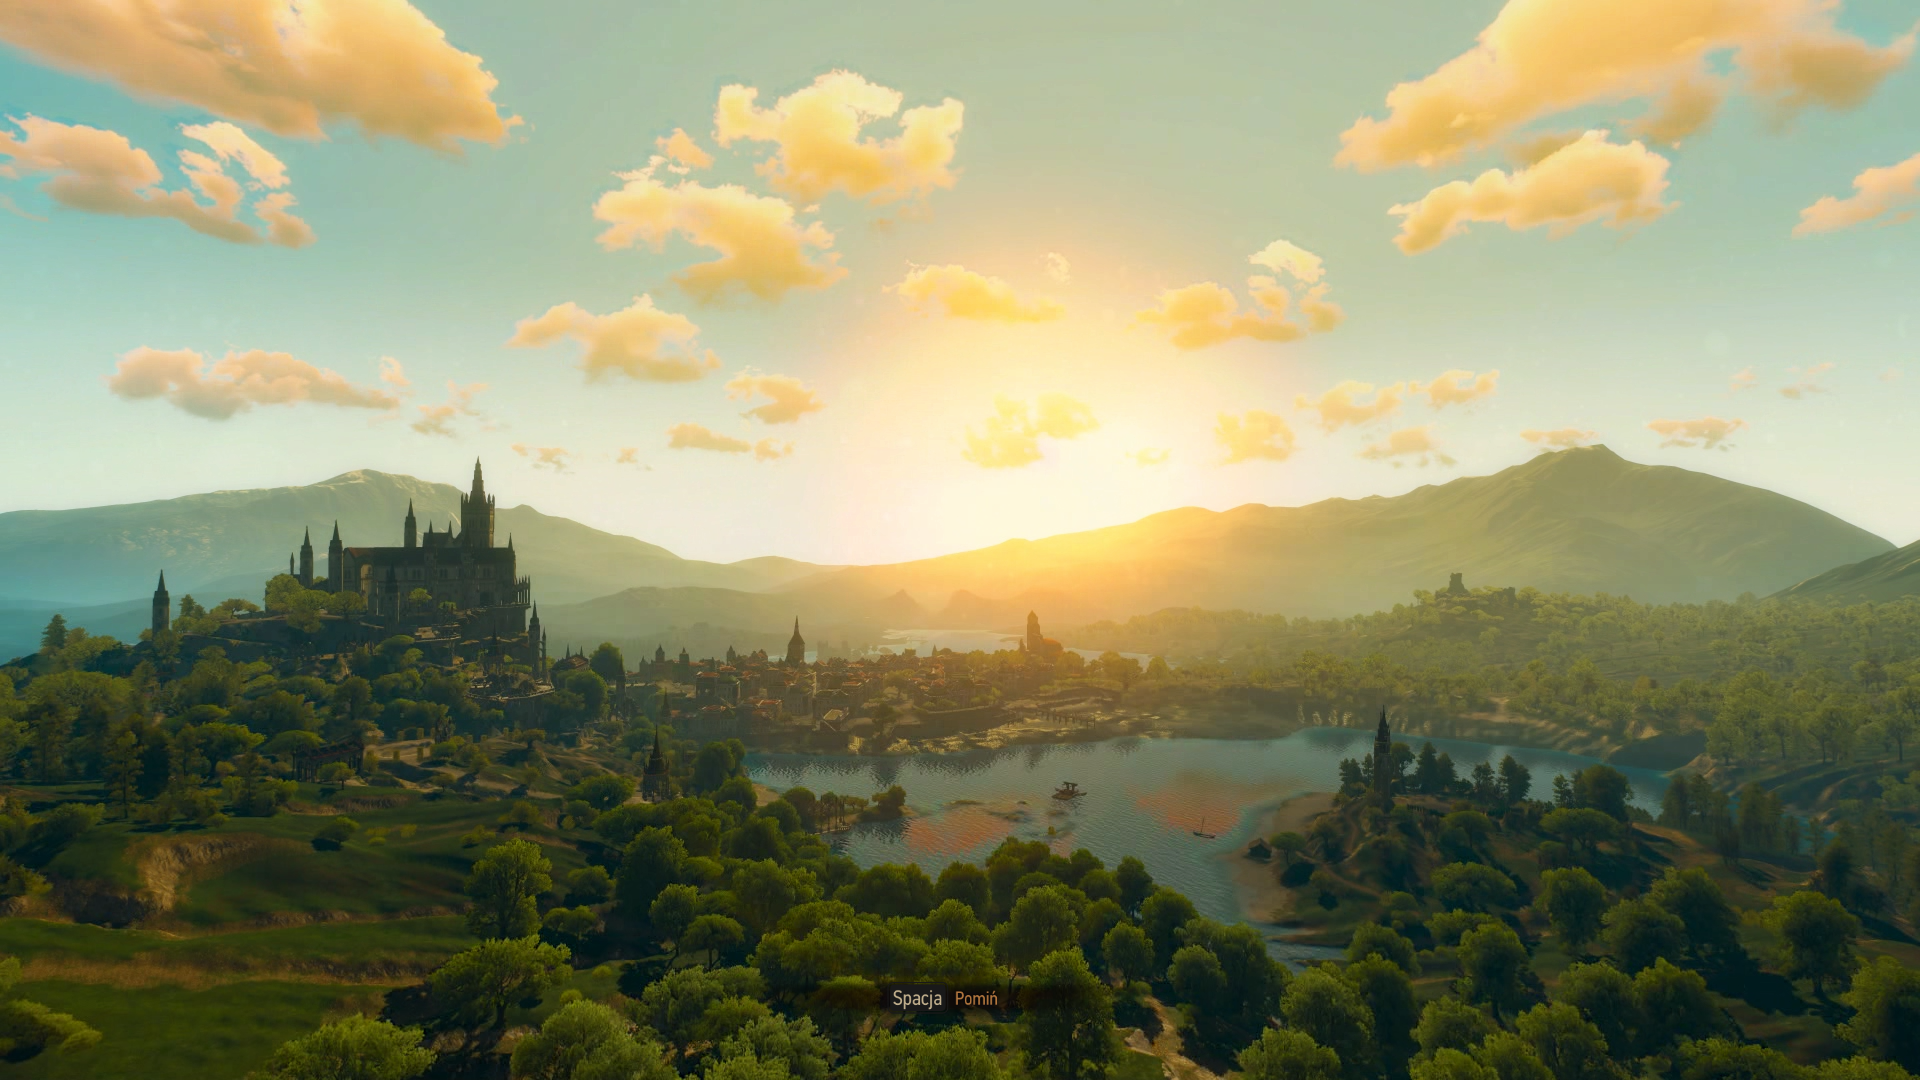 The Witcher 3 27.12.2018 22_46_36.png - Witcher 3: Wild Hunt, the